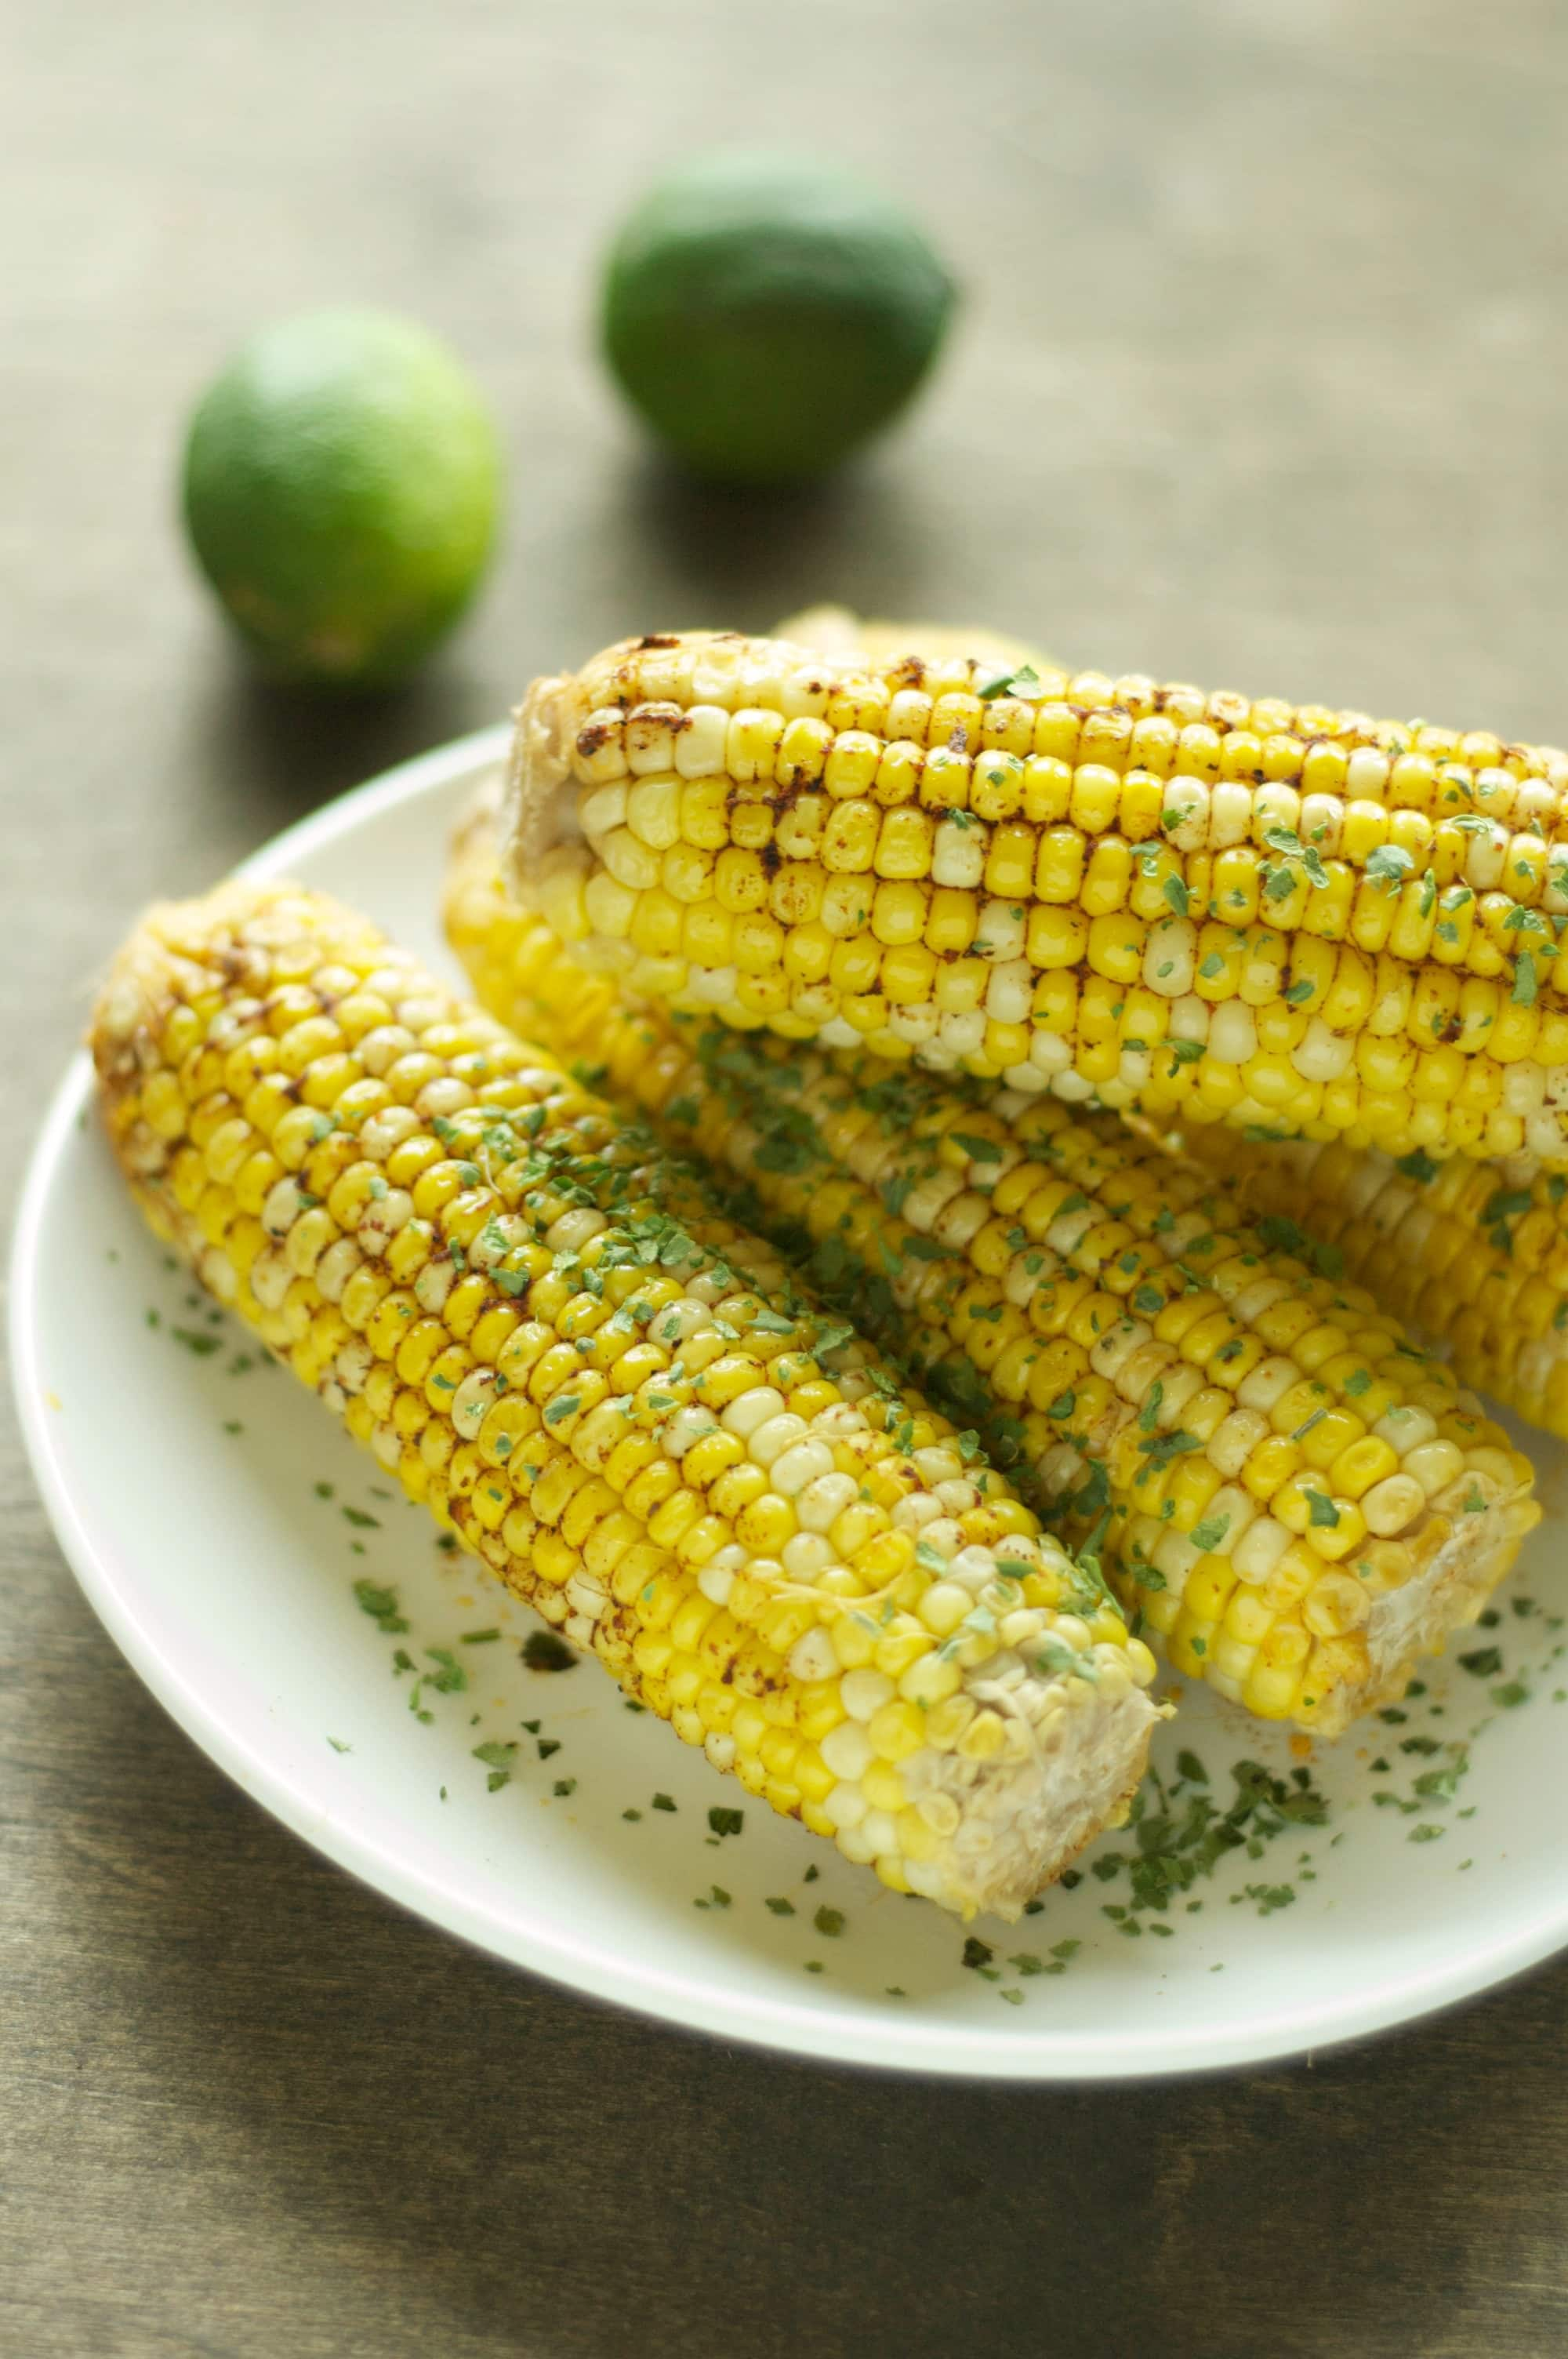 four pieces of corn on the cob on white plate